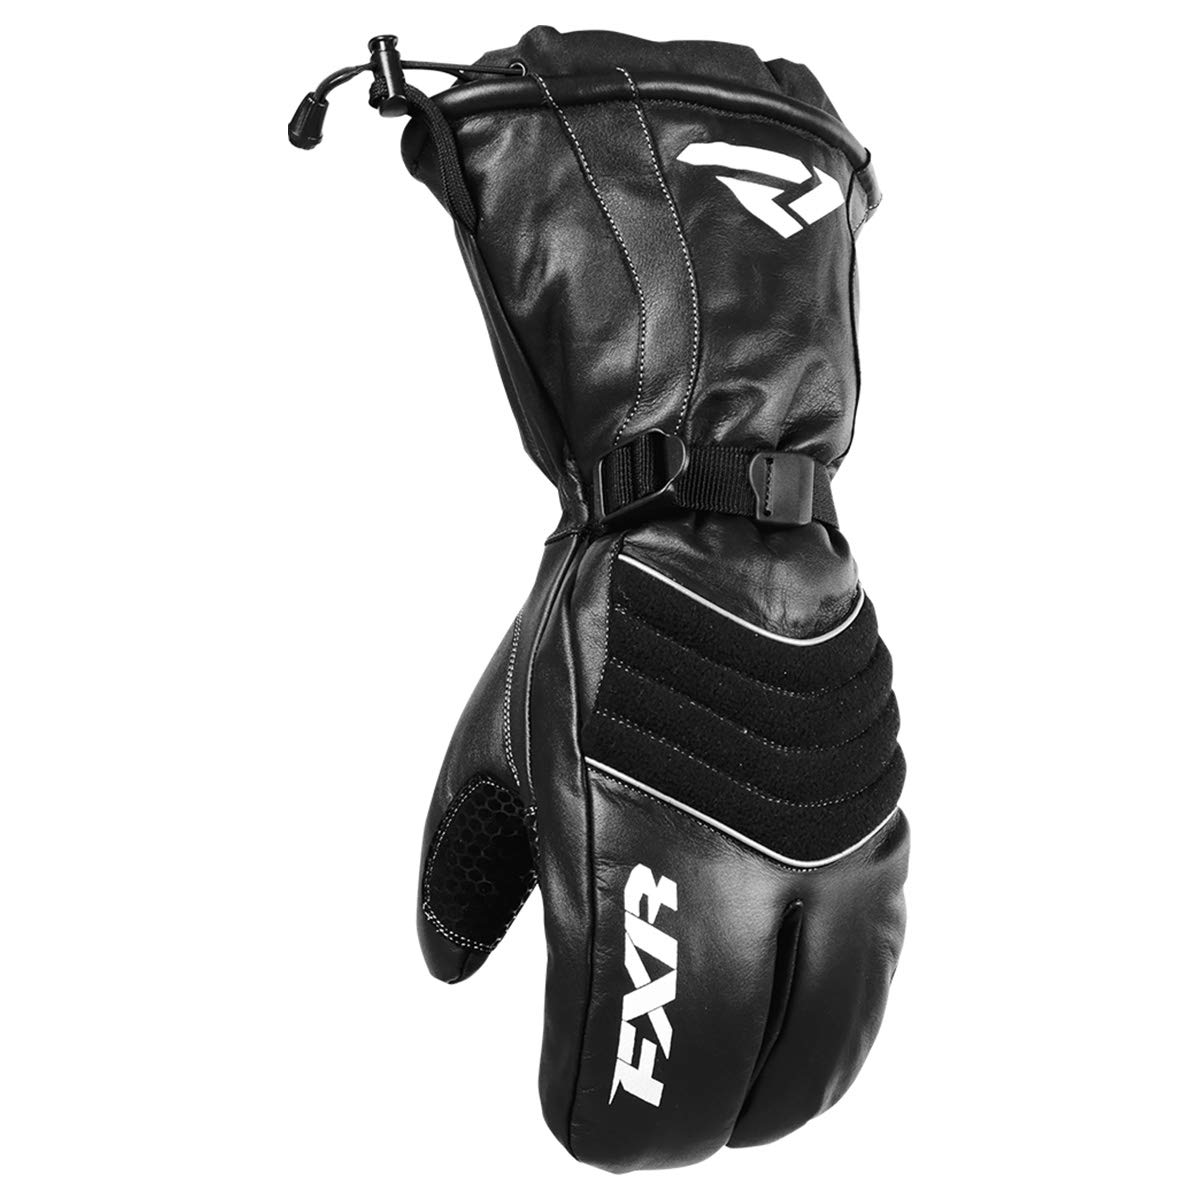 NEW FXR-SNOW LEATHER CLAW ADULT WATERPROOF GLOVES/MITTS, BLACK, 4XL